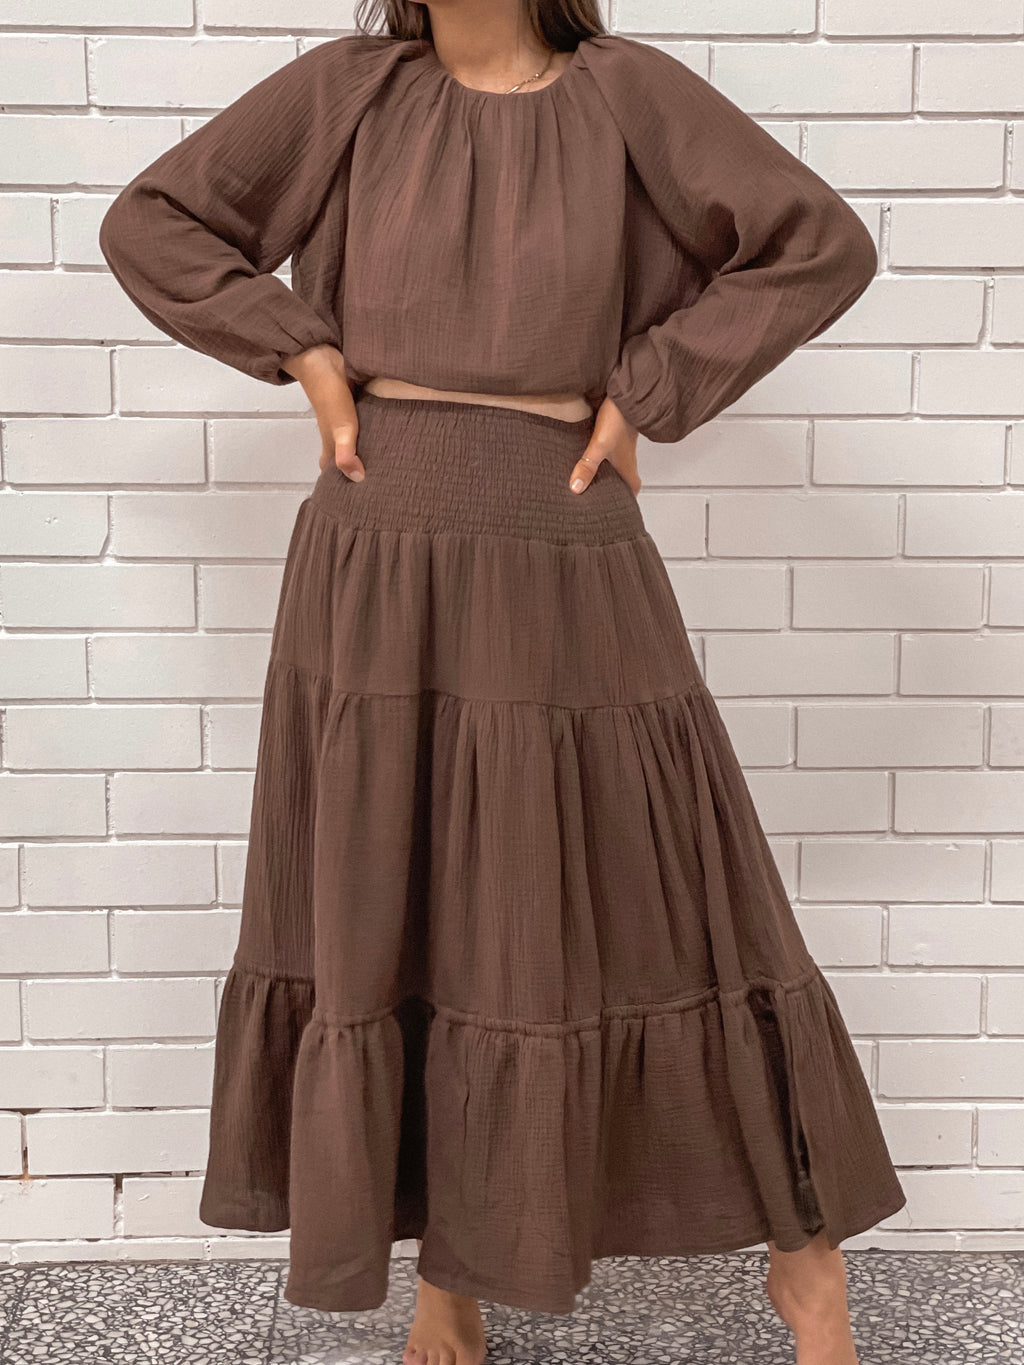 Chloe Skirt - Chocolate